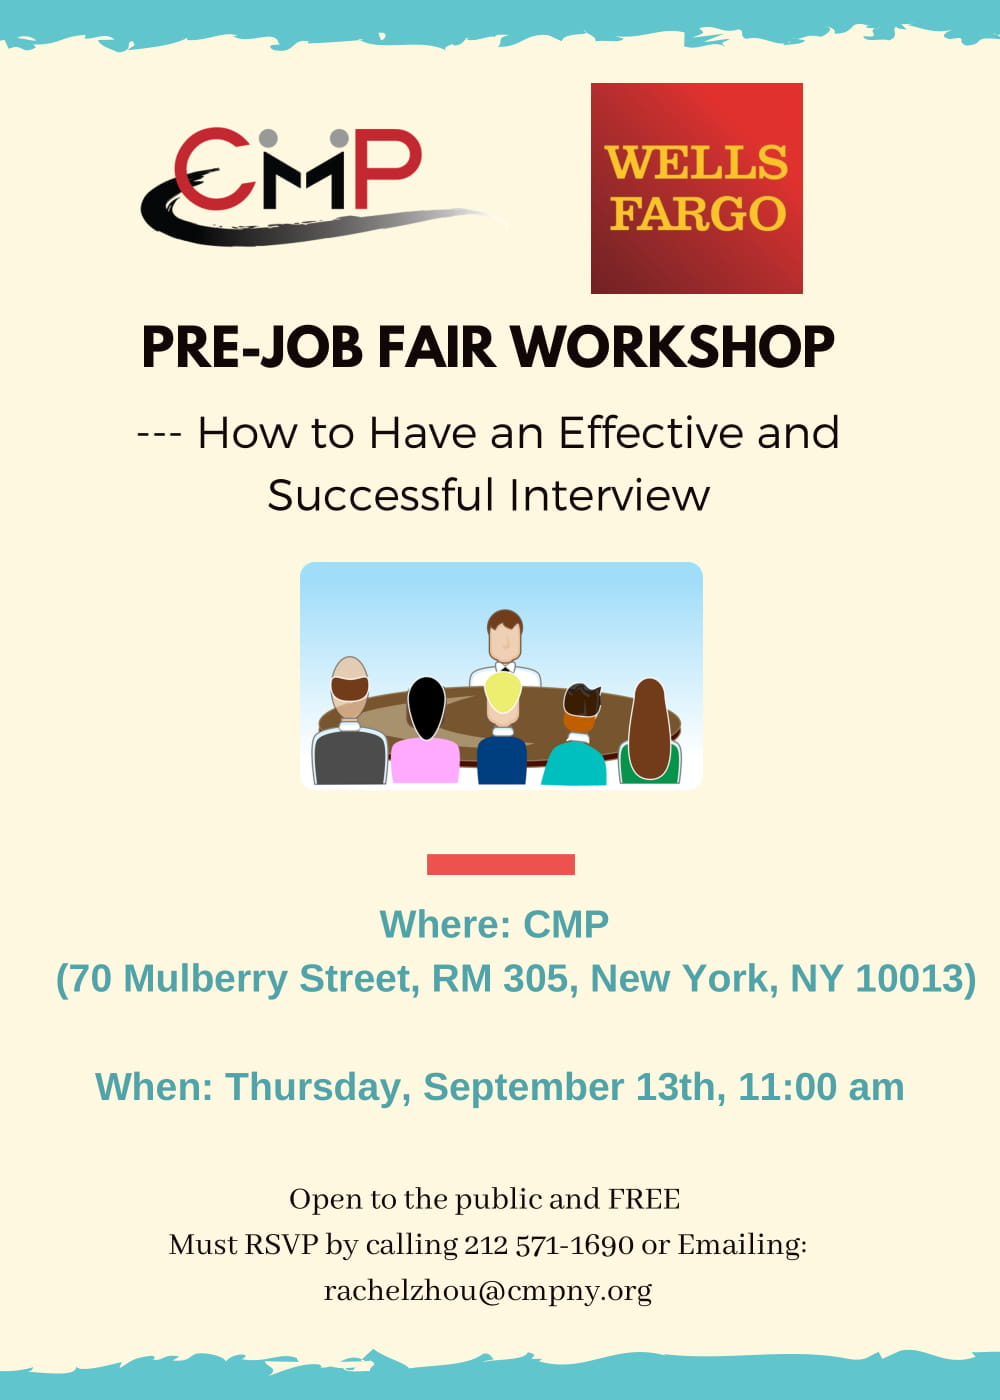 - Are you ready to attend our 9/20 Manhattan Job Fair? Do you know how to have an effective and successful job interview? Come to our Pre Job Fair Workshop on 9/13 and get well prepared!